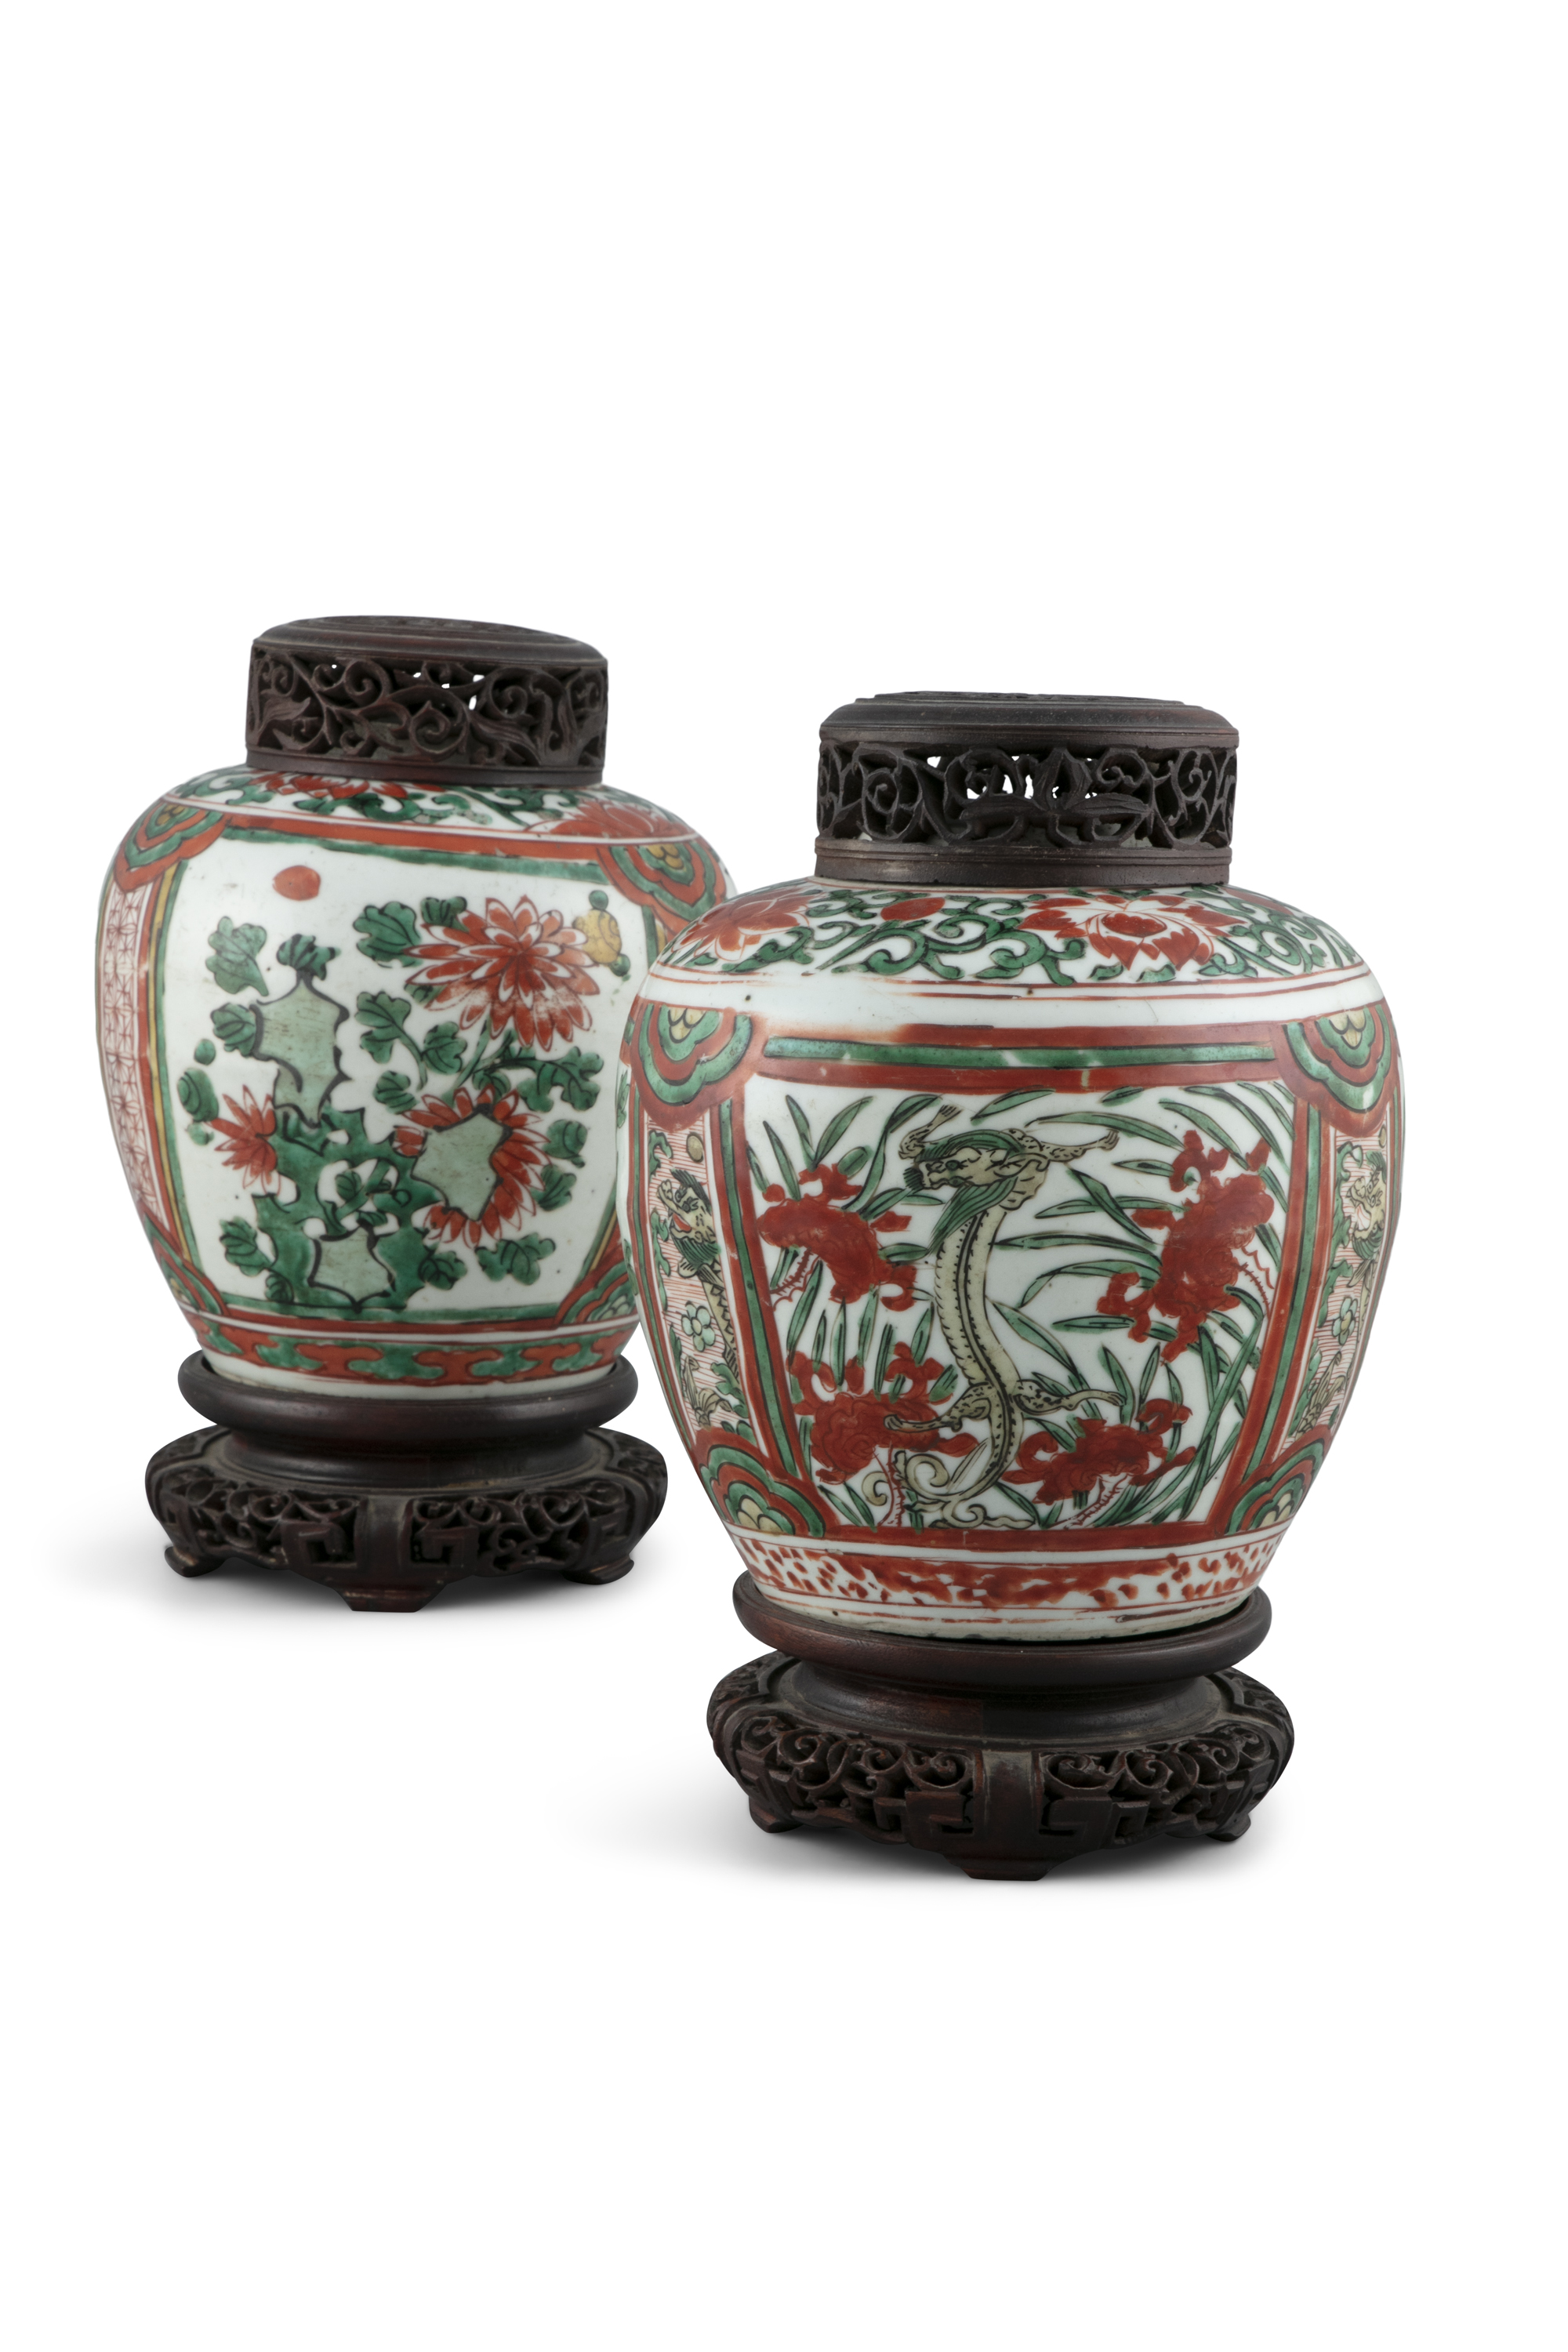 A NEAR PAIR OF WUCAI 'CHI DRAGONS' PORCELAIN GINGER JARS China, Transitional period, 17th century